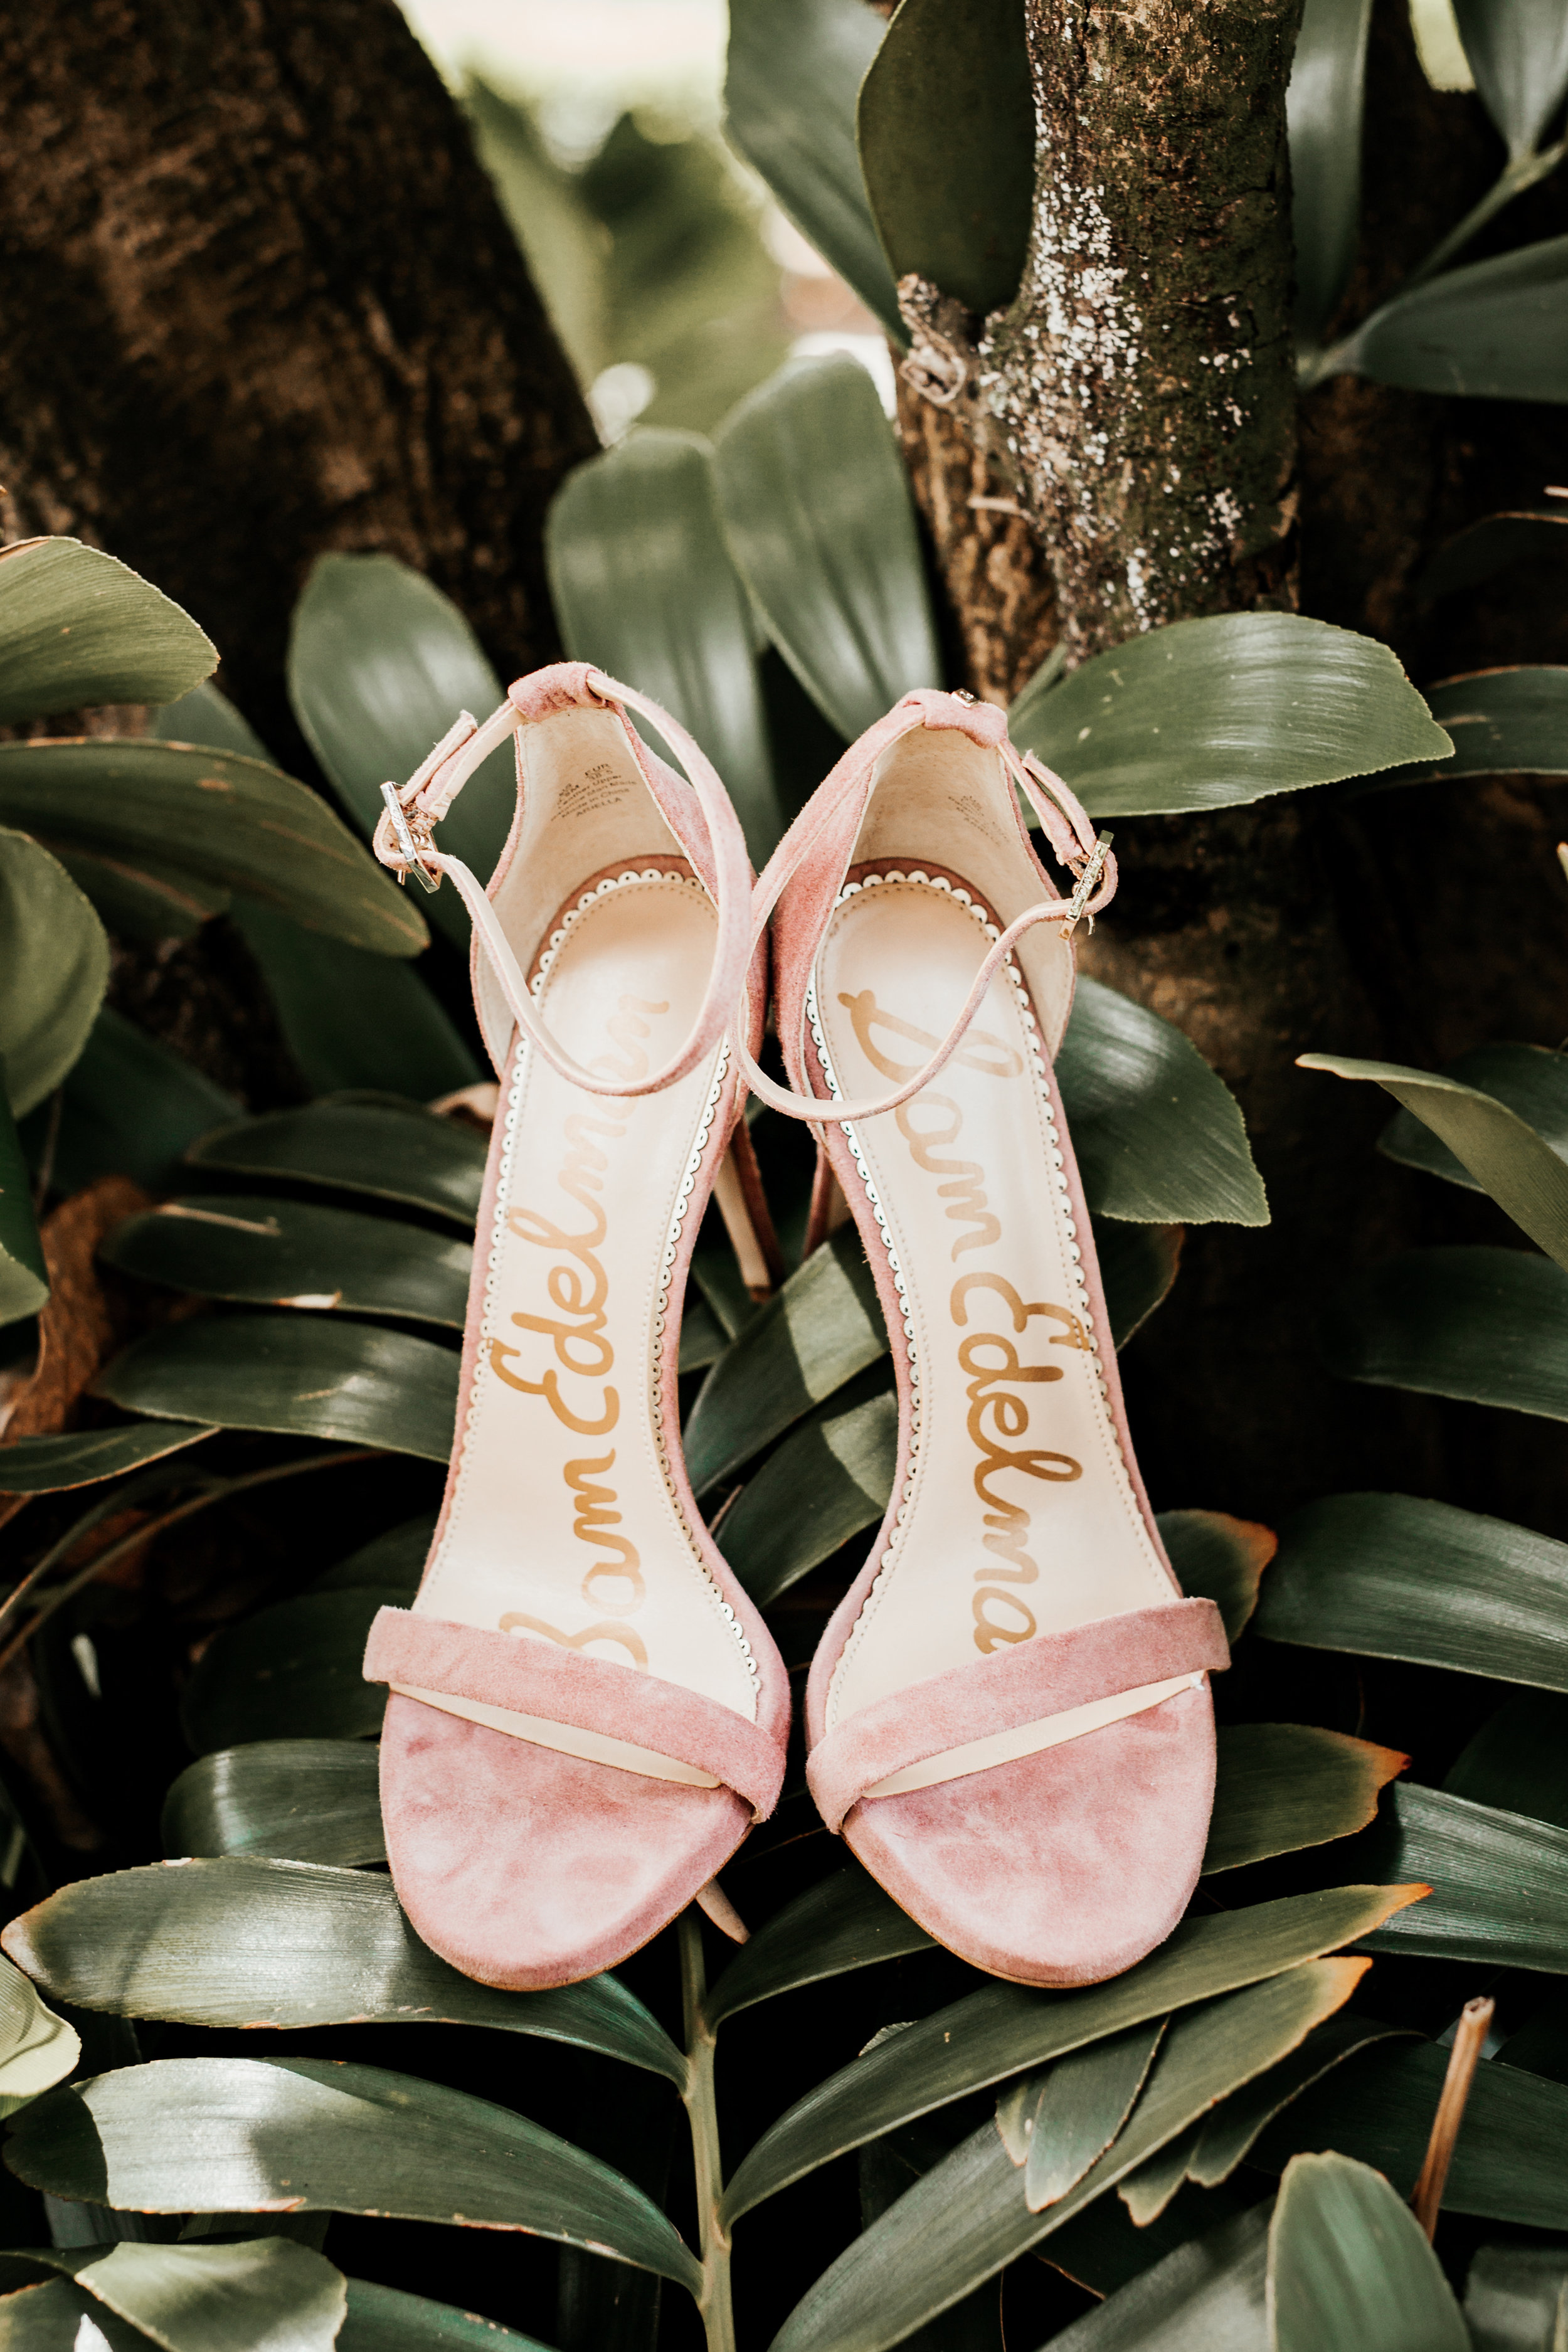 Sam Edleman Wedding Shoes for an Old Florida Style Wedding in Orlando, Florida  Orlando Wedding Planner Blue Ribbon Weddings  Orlando Wedding Photographer 28 North Photography  Wedding Ceremony & Reception at Lake Nona Golf & Country Club